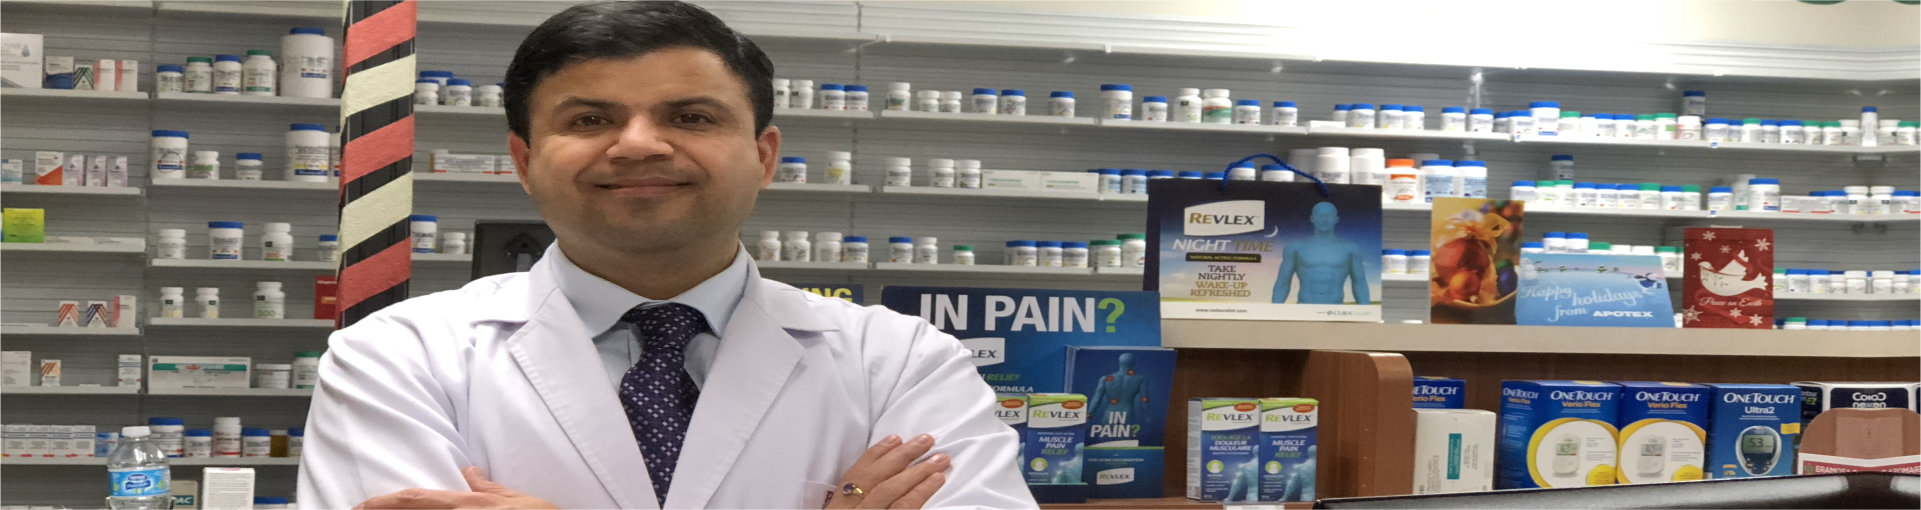 Pharmacist standing in the pharmacy